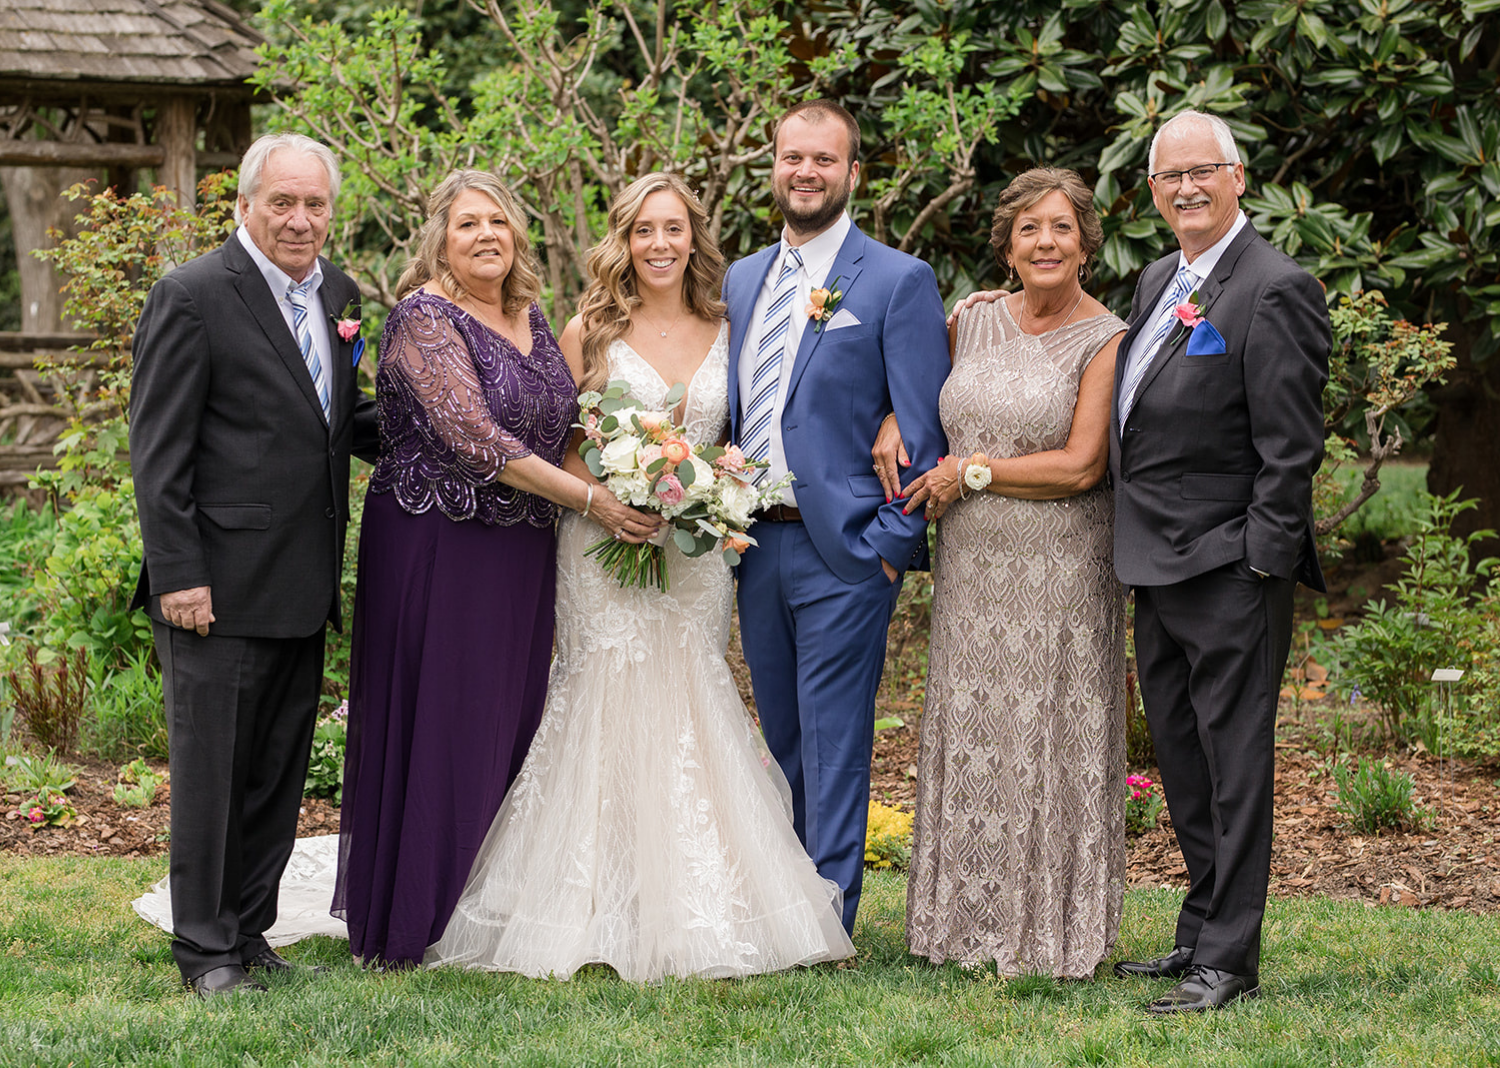 bride and groom with their families for outdoor wedding portraits